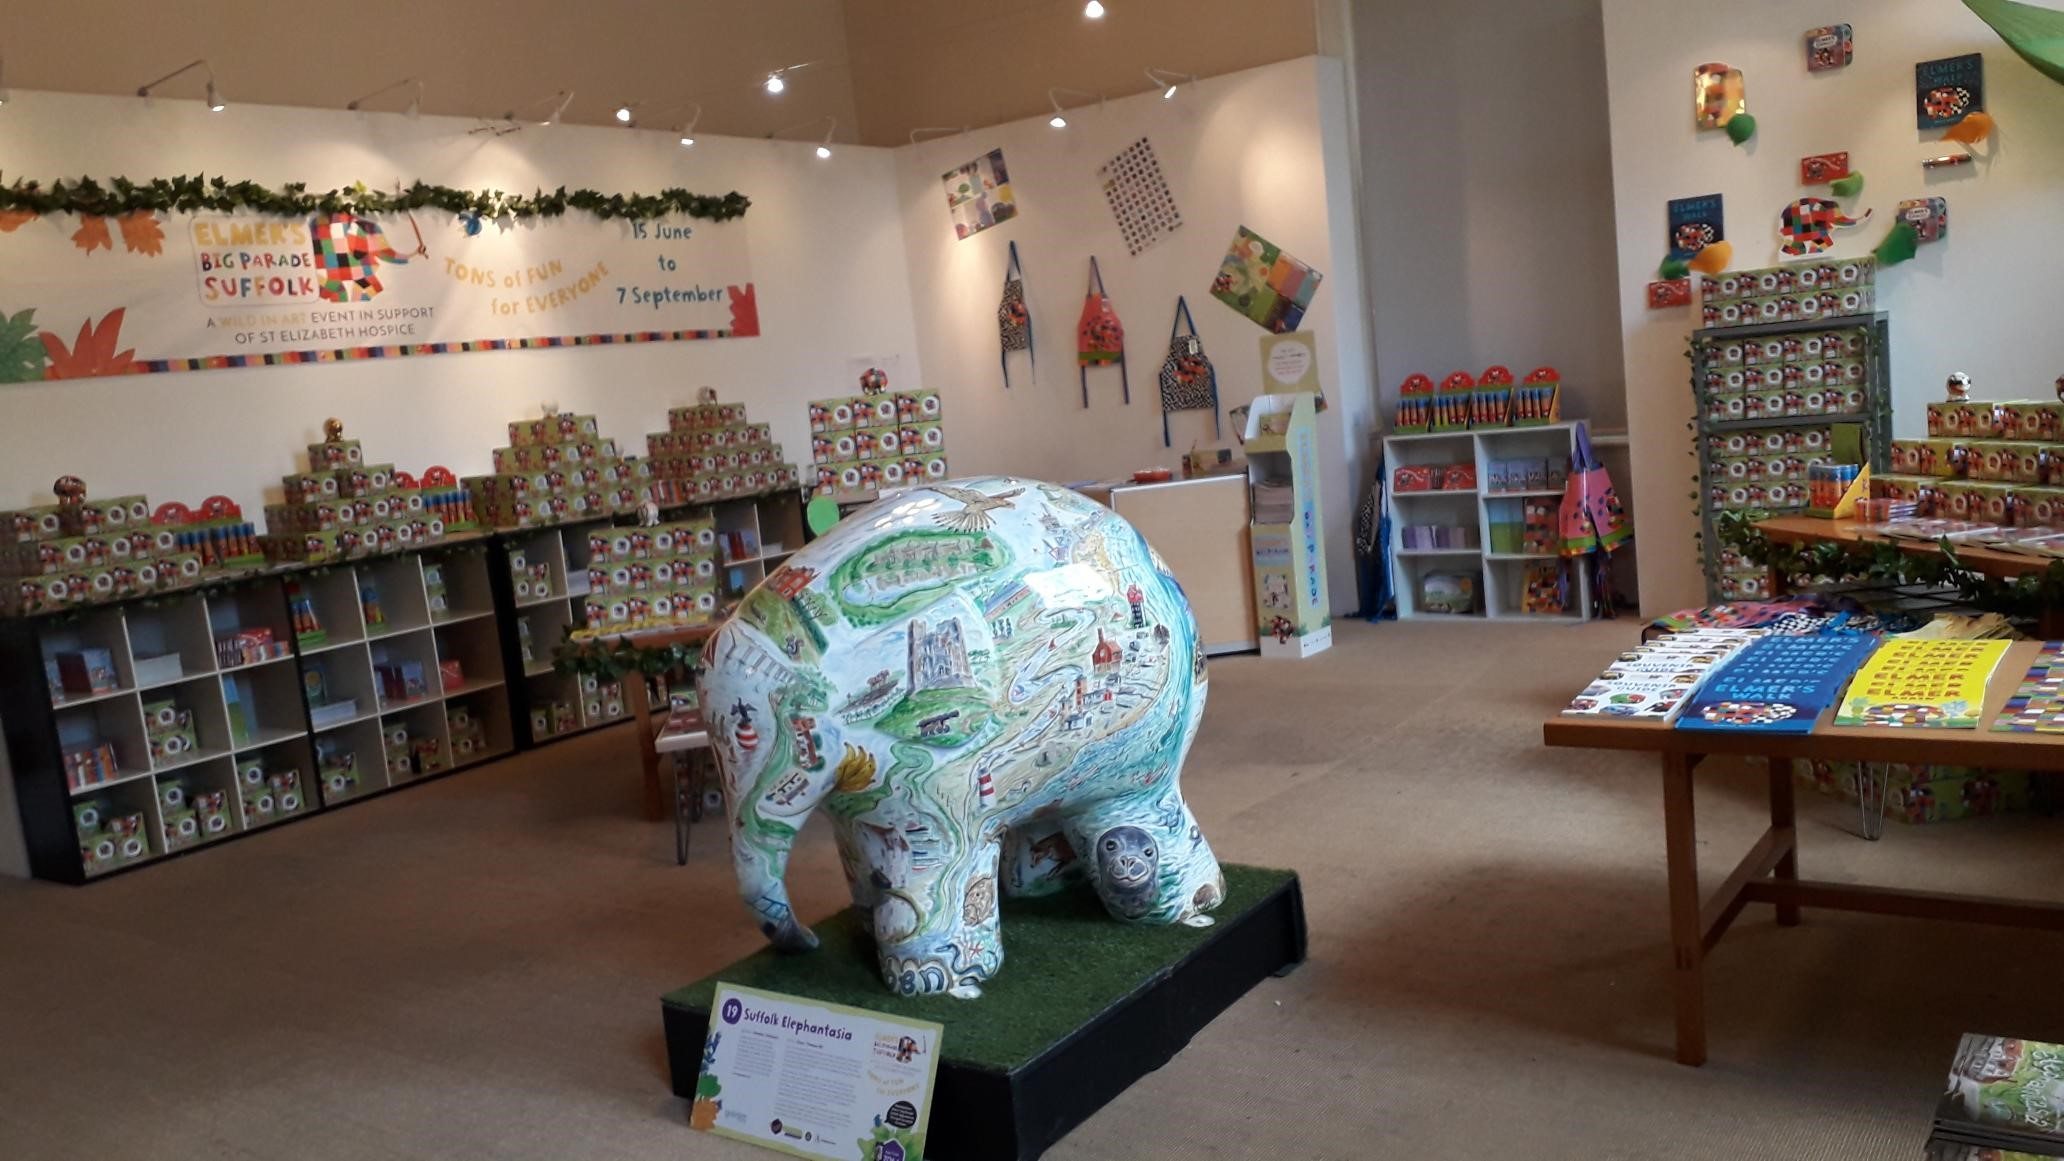 Suffolk Elephantasia by Glynn Thomas RE. Sponsored by Gotelee Solicitors. - Image 3 of 5